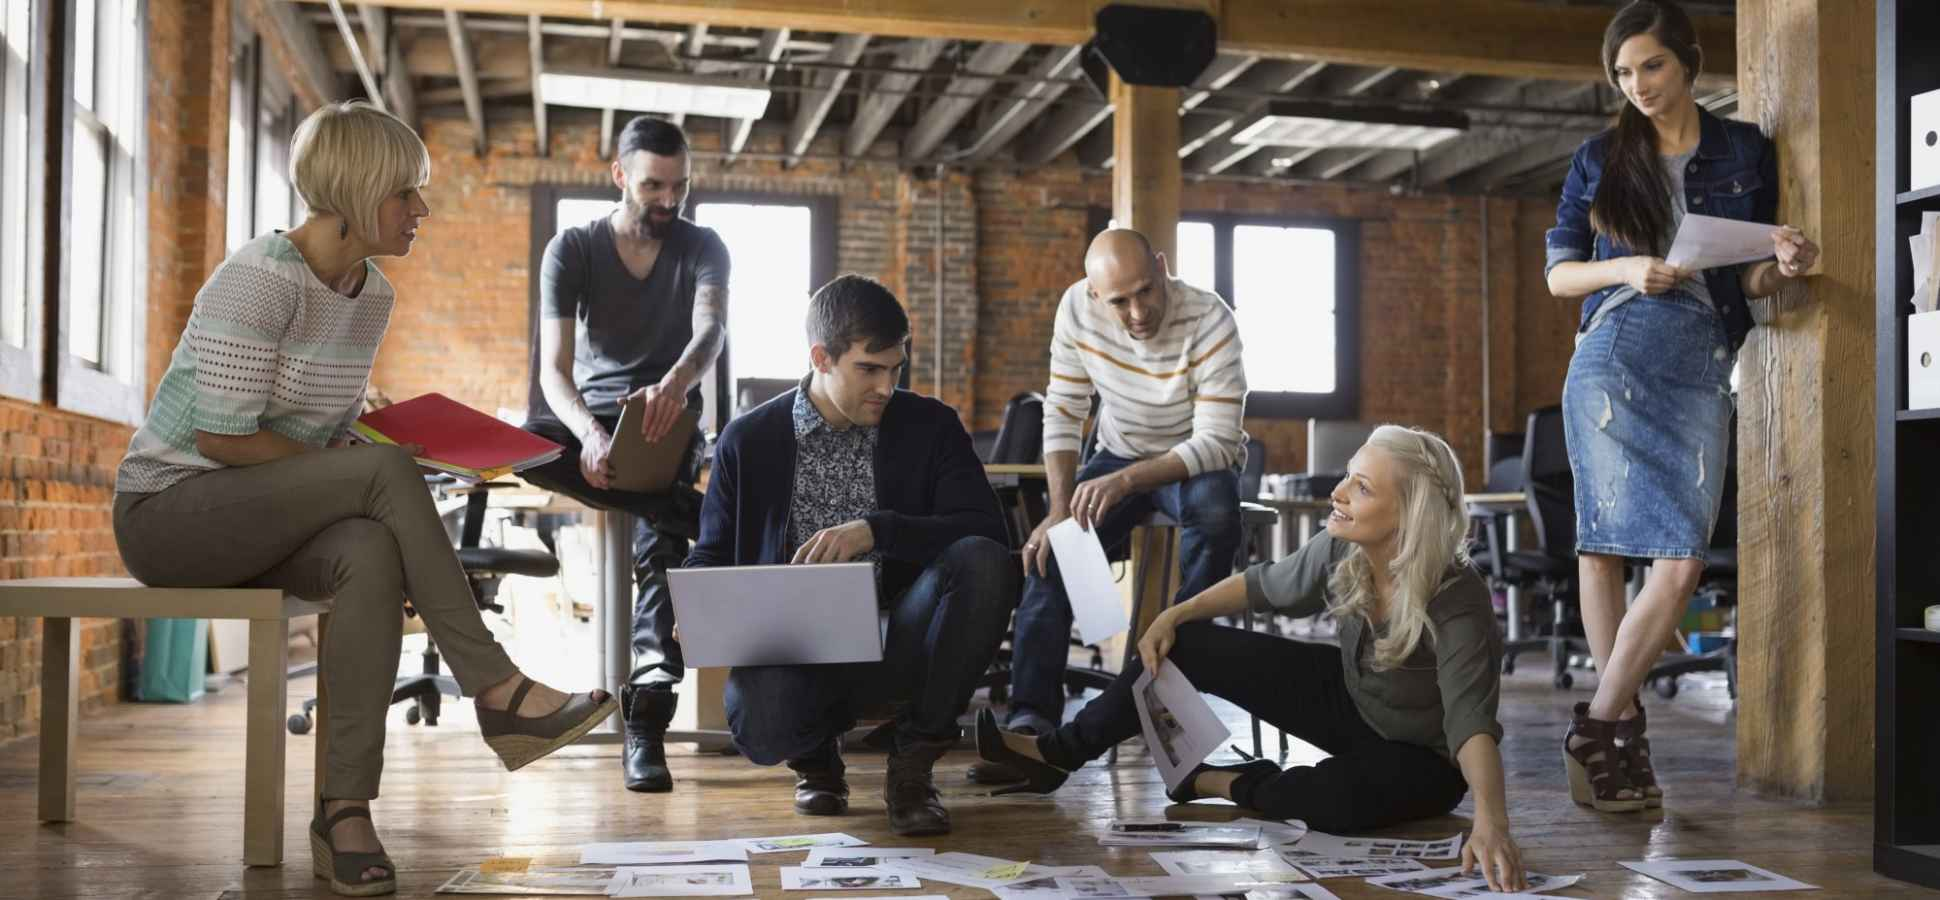 How to Generate $500 Million From a Single Ideation Workshop